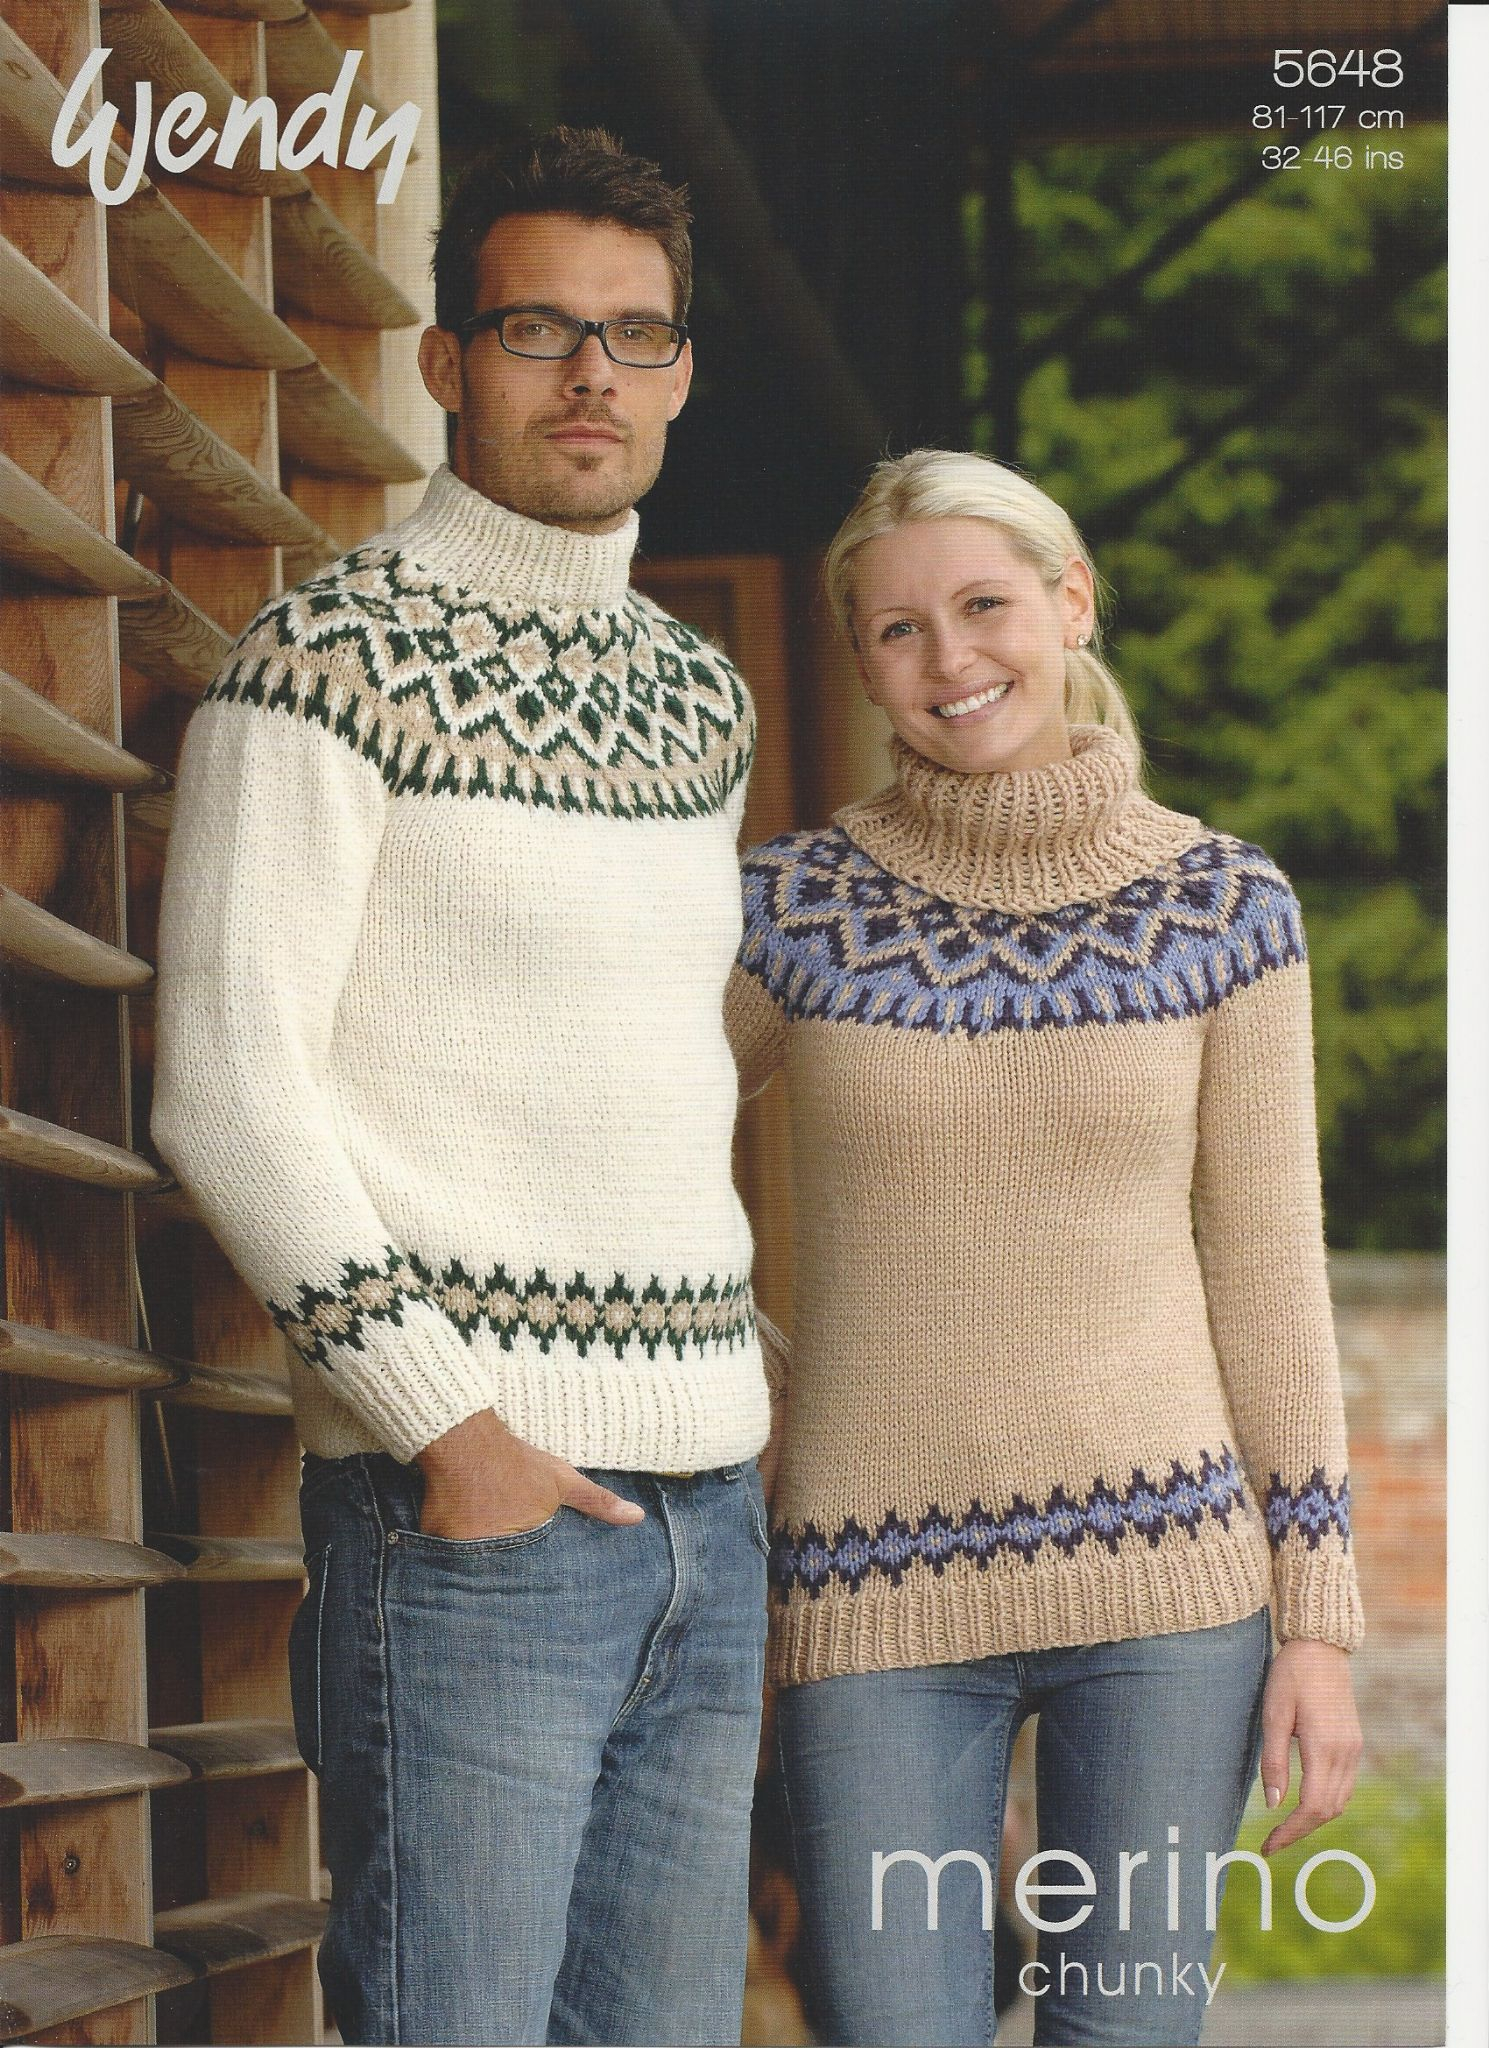 Yoke Knitting Pattern Wendy Mens Ladies His Hers Fairisle Yoke Sweaters Chunky Knitting Pattern 5648